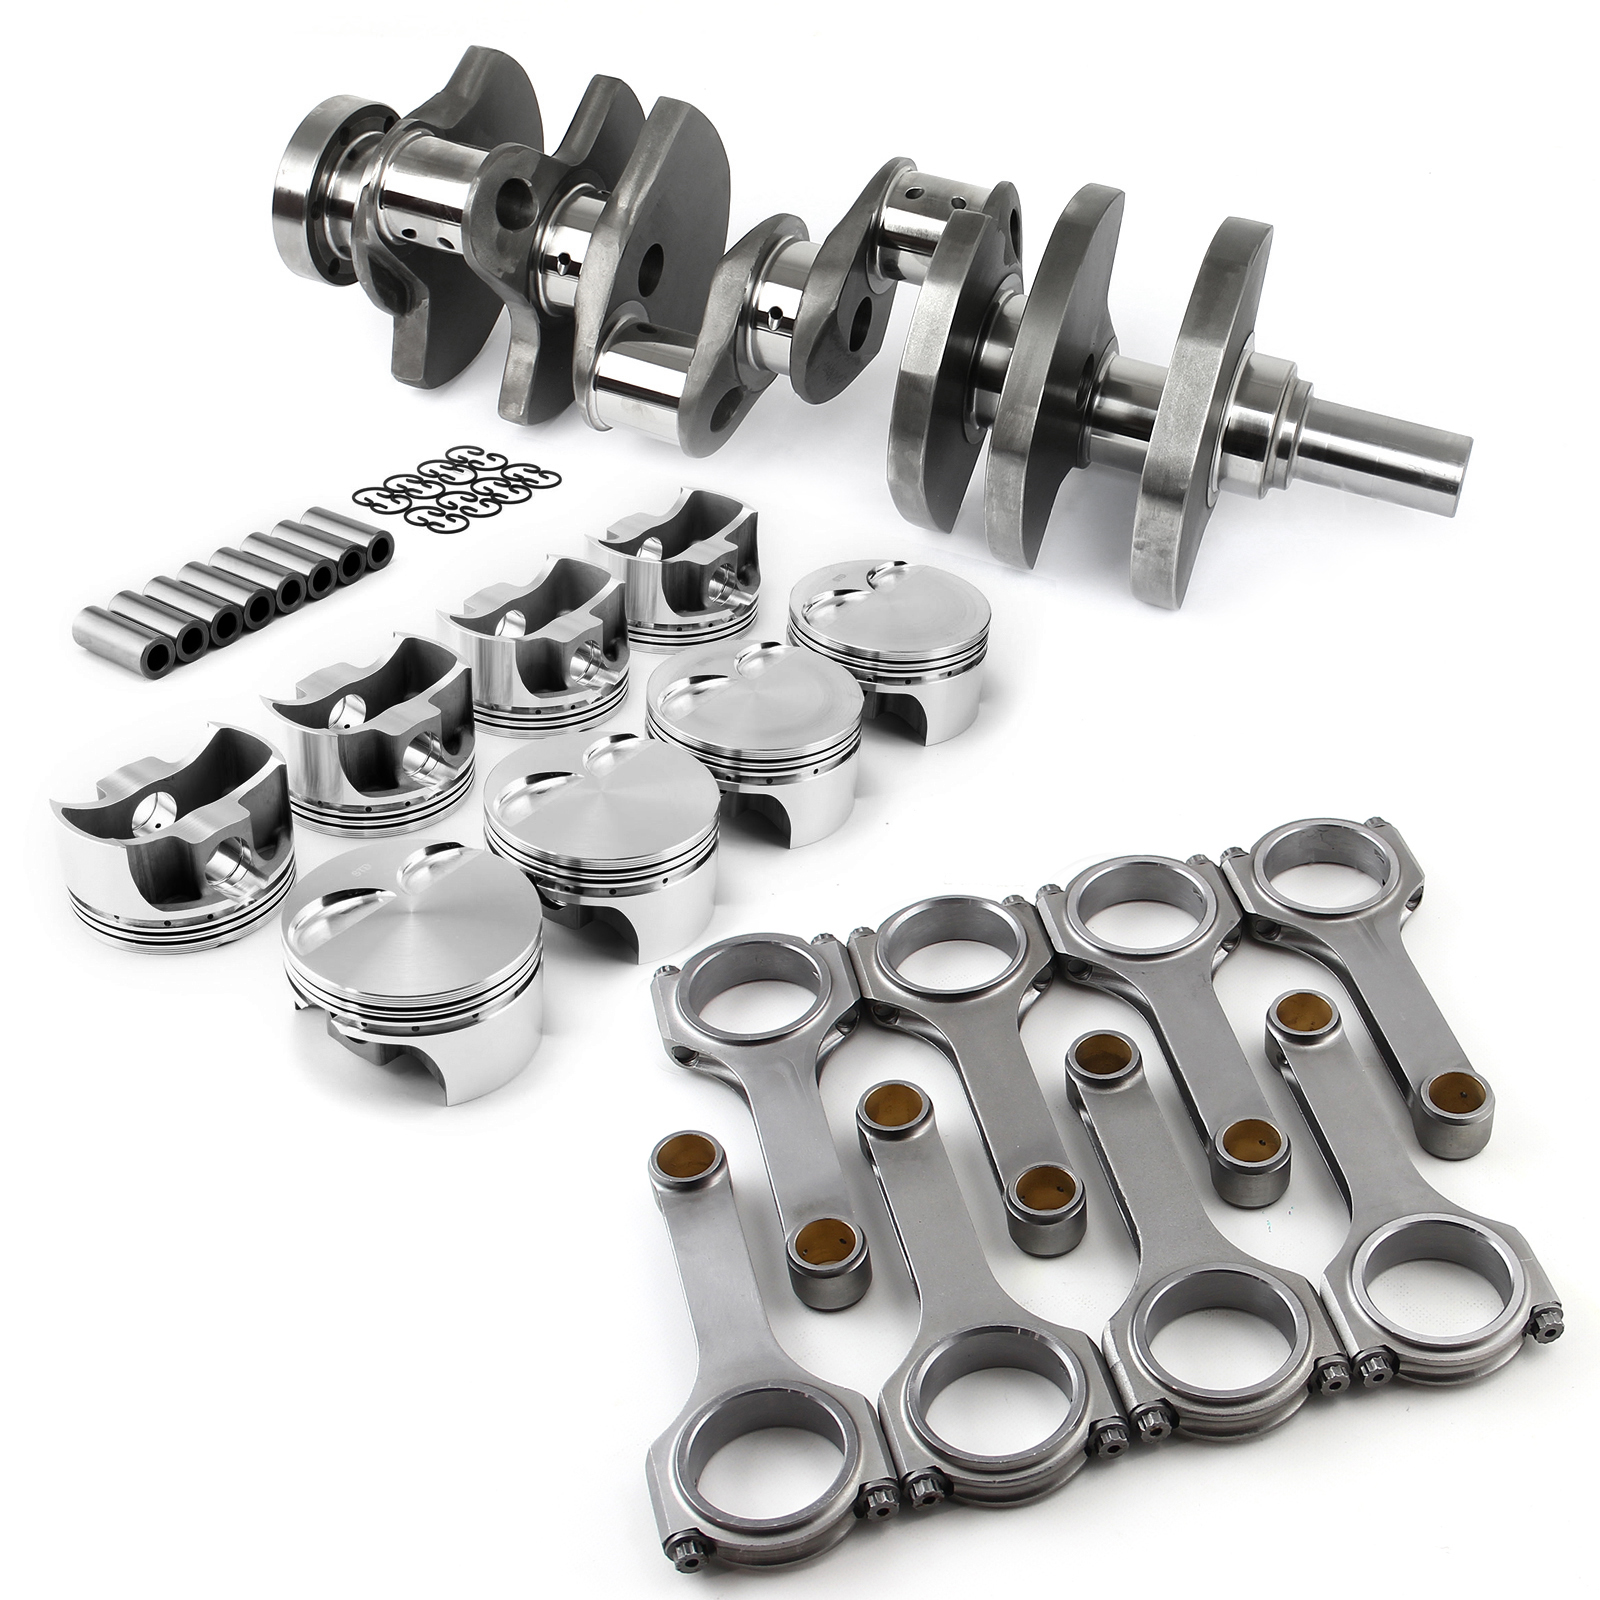 """Chevy LS1 3.905"""" 383ci Forged Rotating Assembly Kit (F,H,F)"""